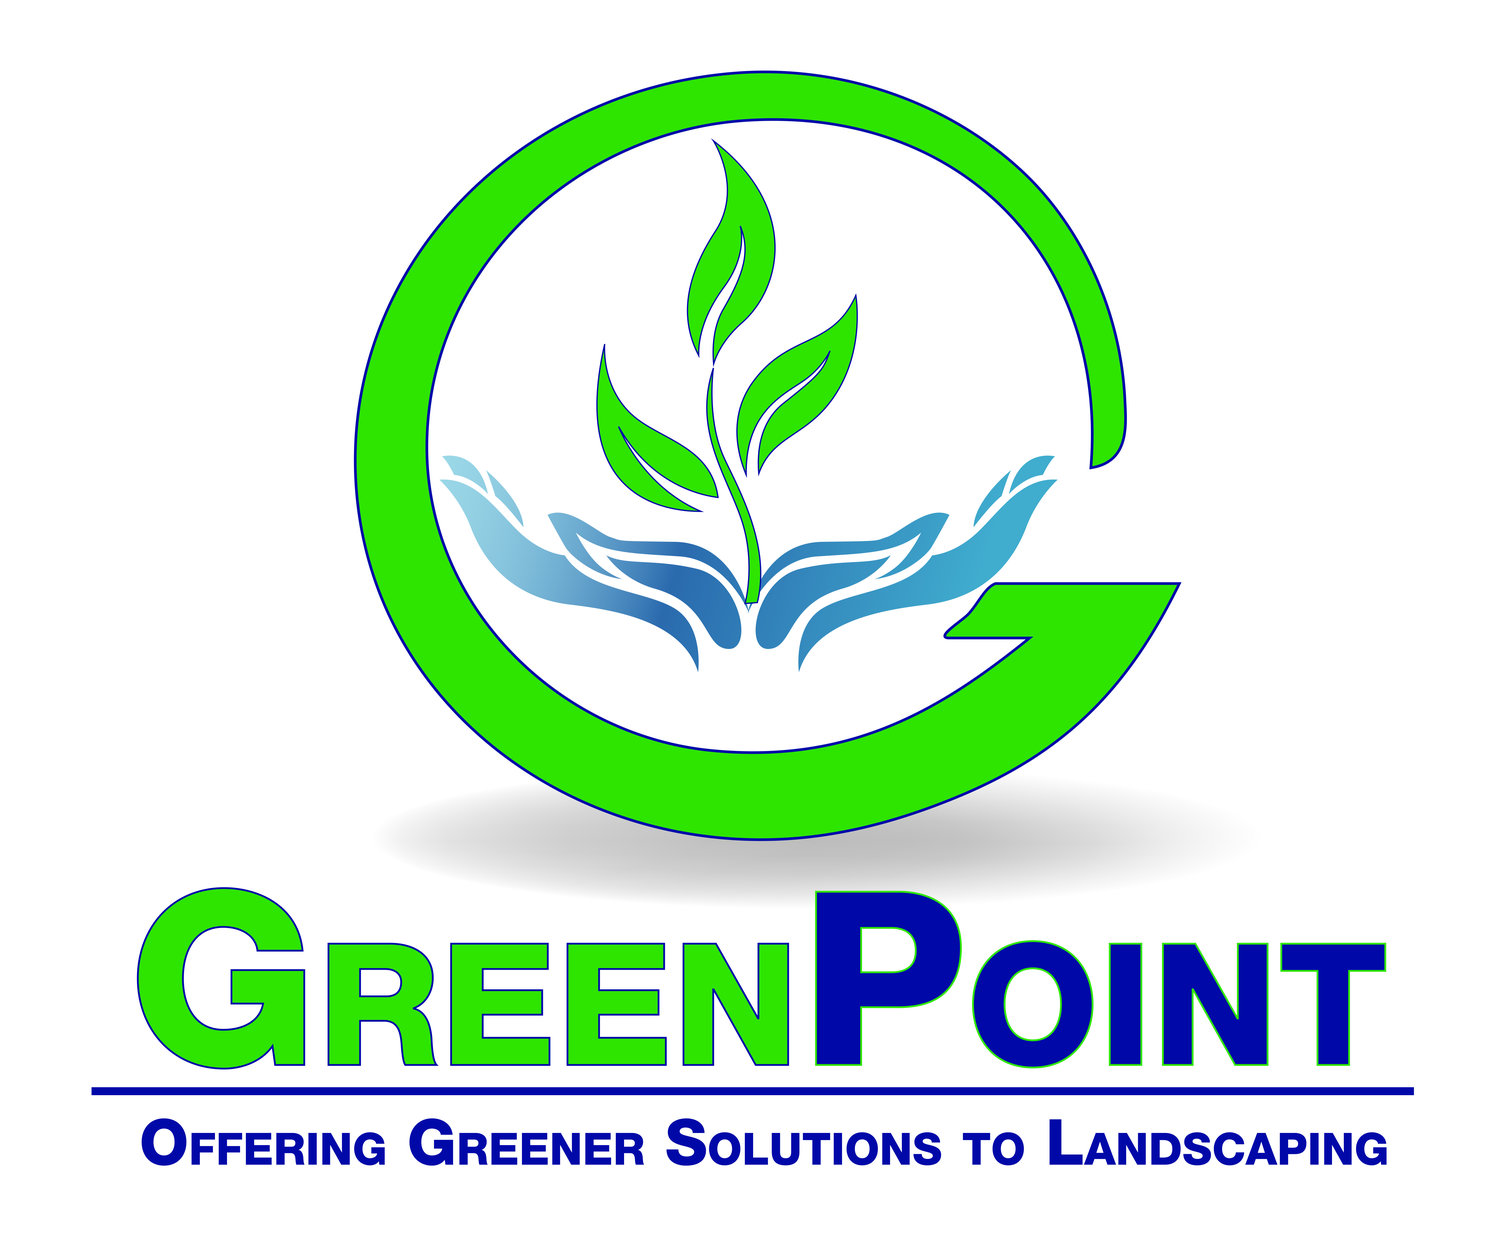 GreenPoint Inc